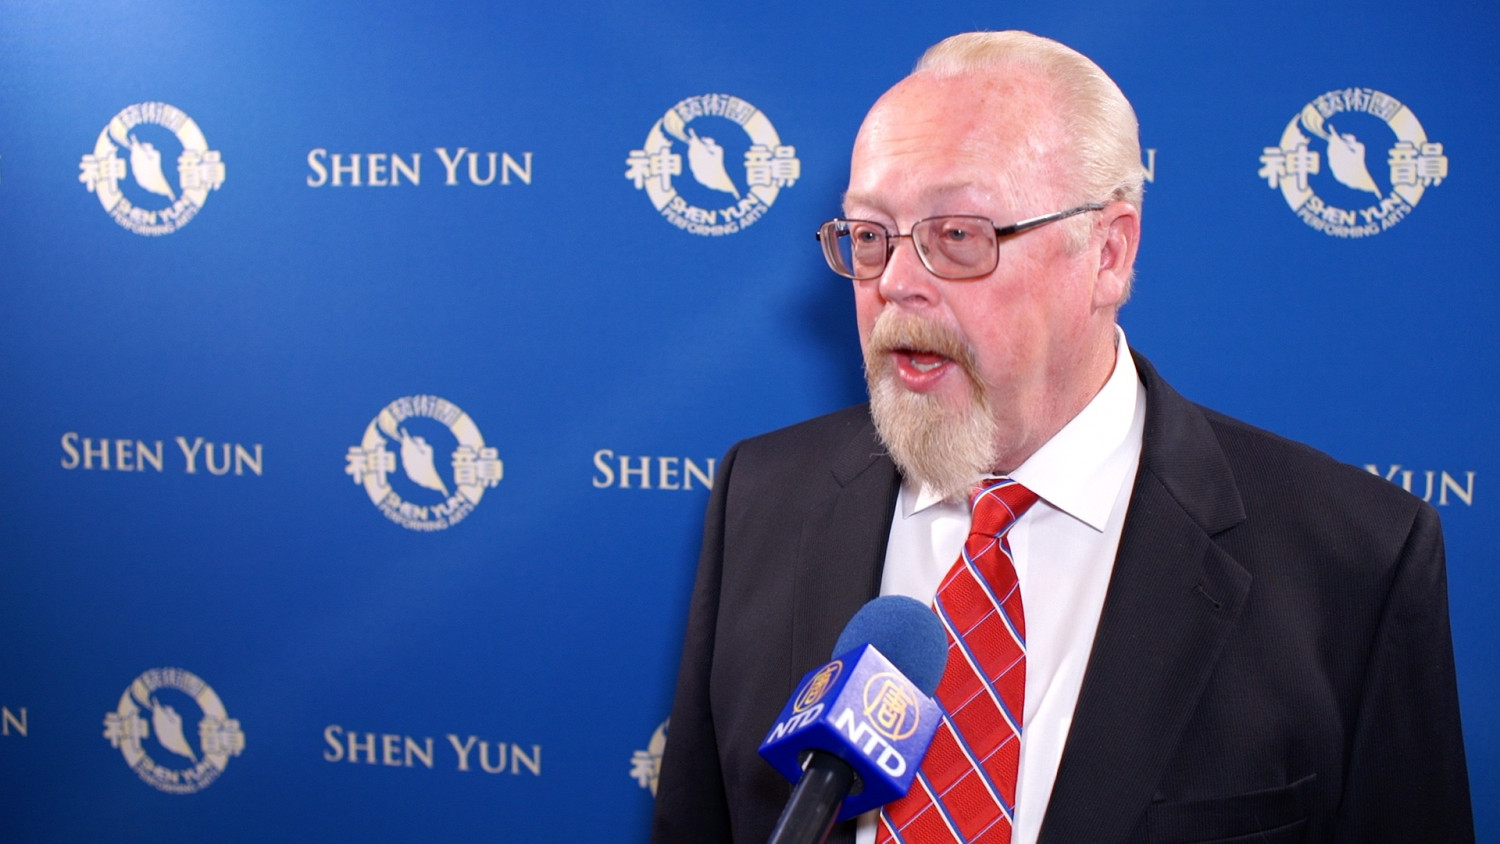 Business Owners Praise Shen Yun's Performance Level